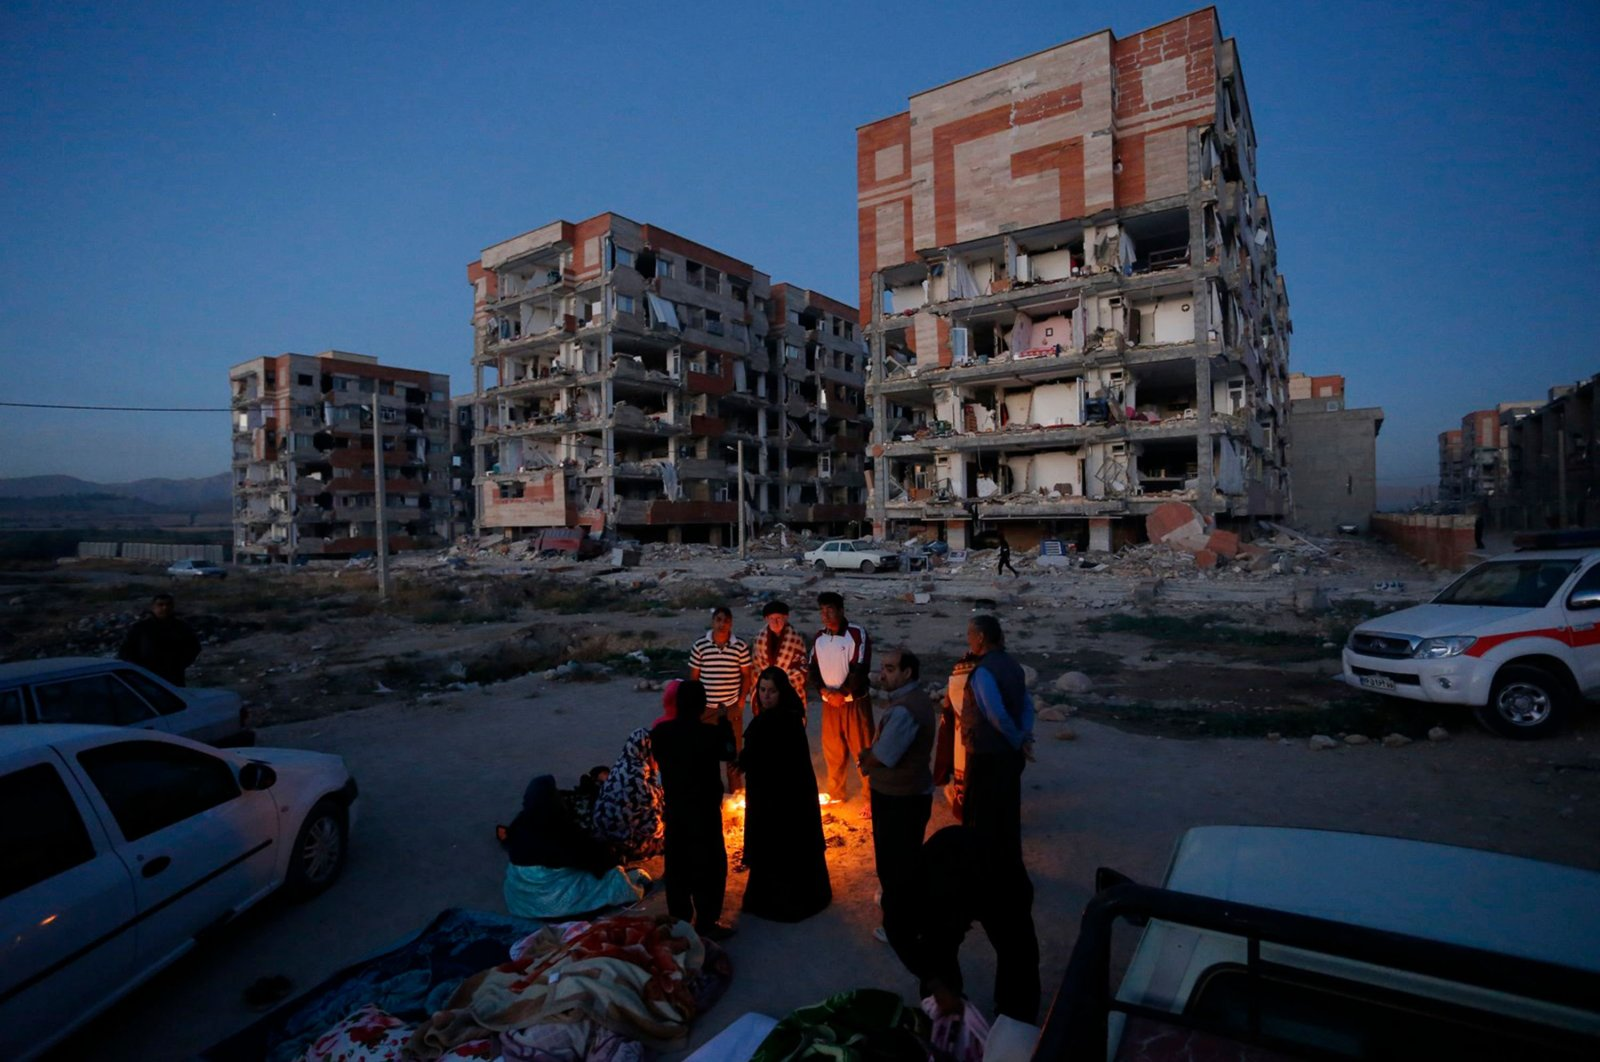 Residents huddle by a fire in an open area following a 7.3-magnitude earthquake at Sarpol-e Zahab in Iran's Kermanshah province, Nov. 13, 2017. (AFP Photo)